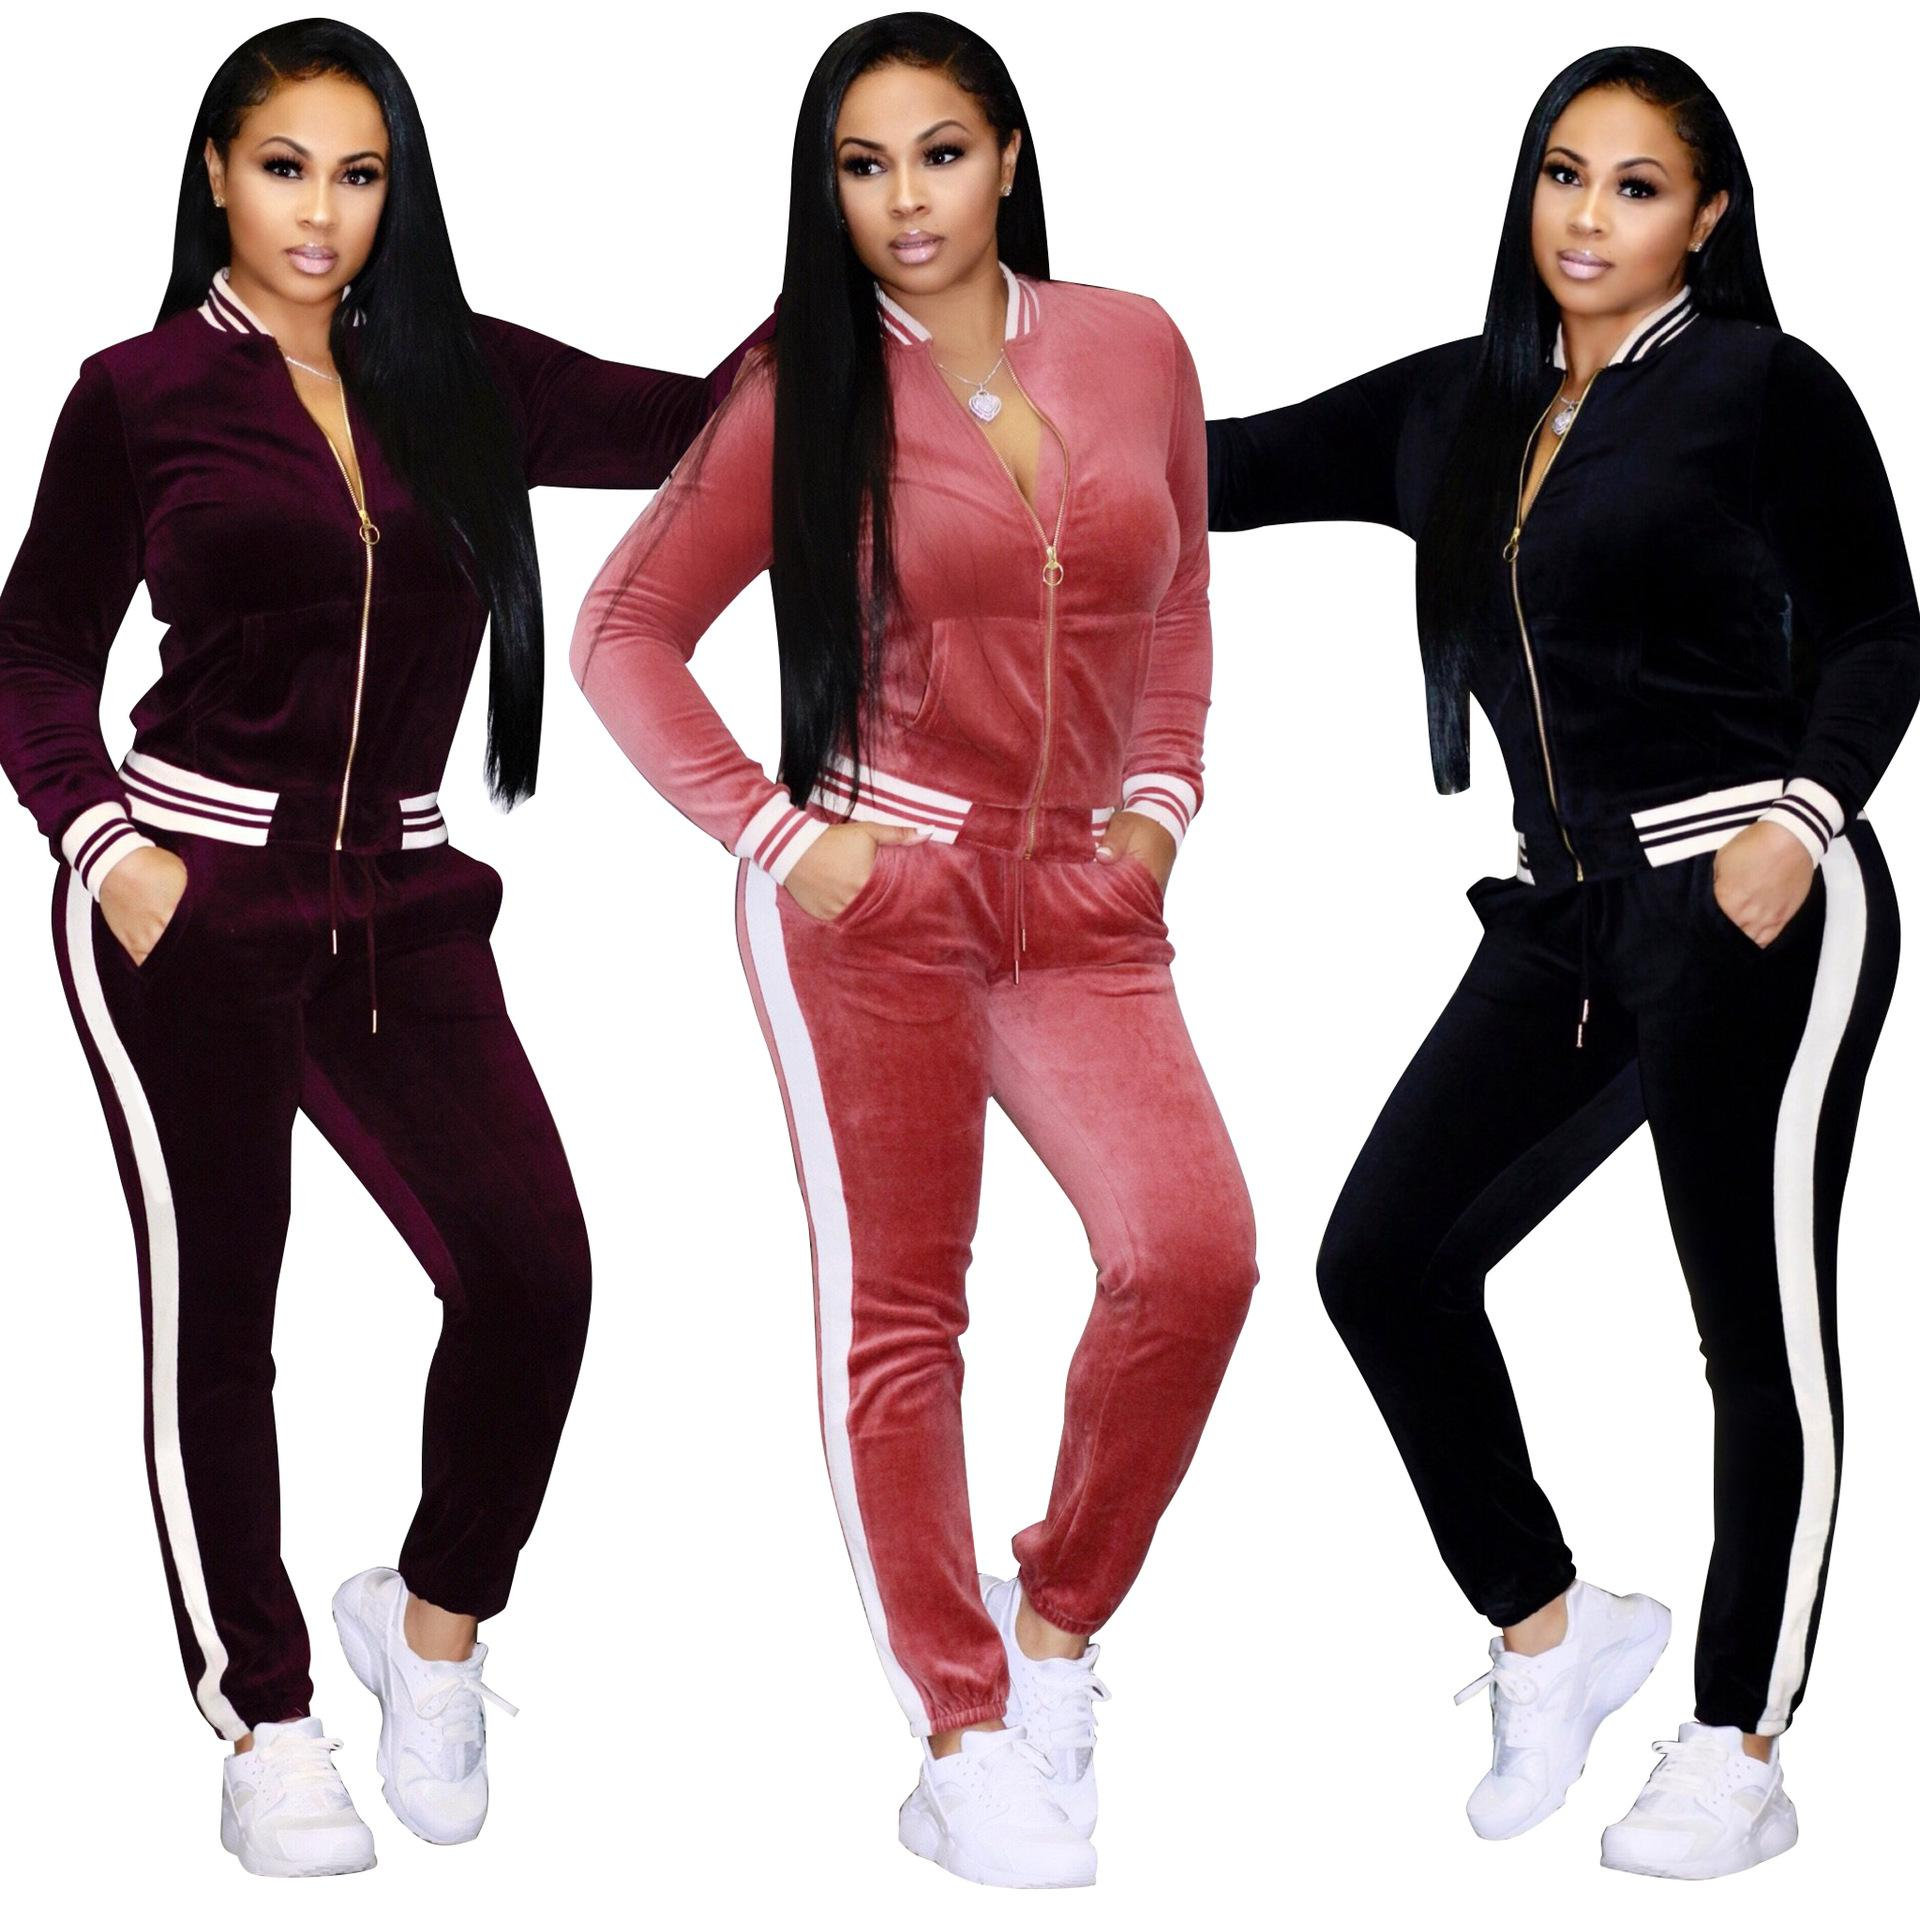 Leg Long Zipper Tops Velvet Pant 3XL Tracksuit Set Twinset Women Standard Costume From Velour Striped 2019 Sleeve Compact Sporting Tracksuit Suits F0wqpzxnT